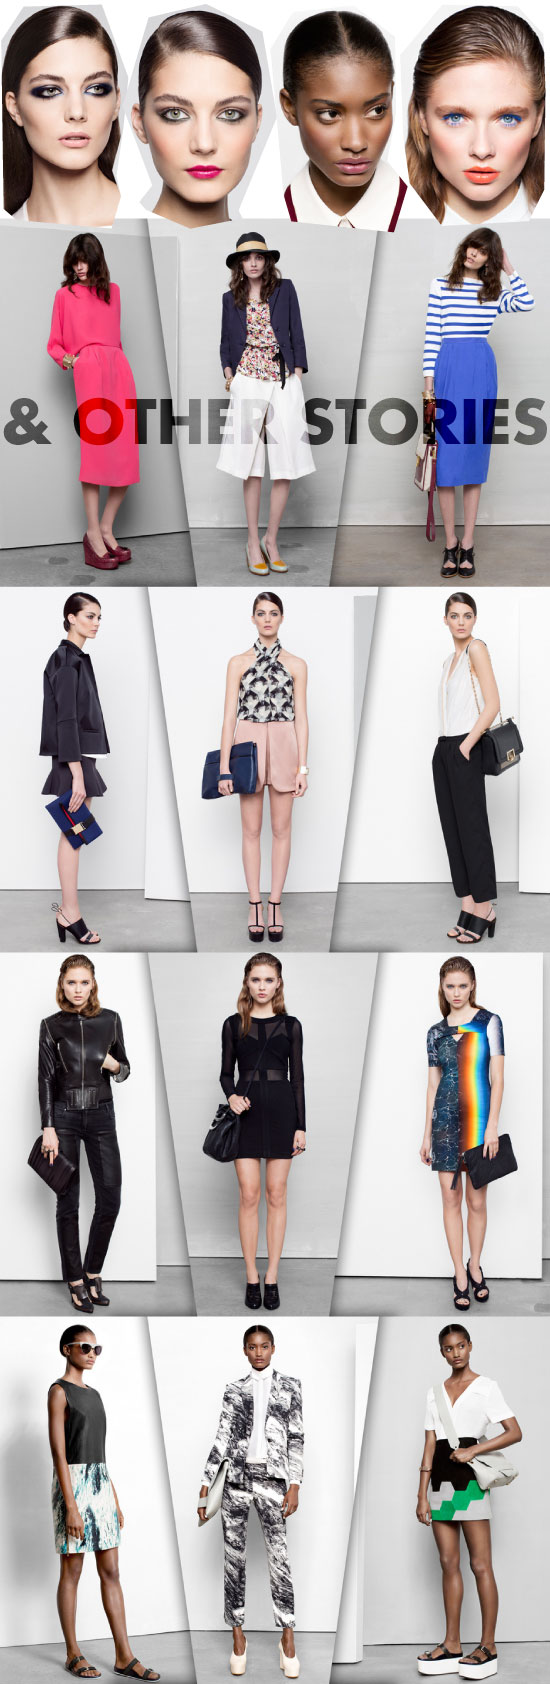 h&m-&-other-stories-and-other-stories-lookbook-make-maquiagem-roupas-lancamento-pecas-prevew